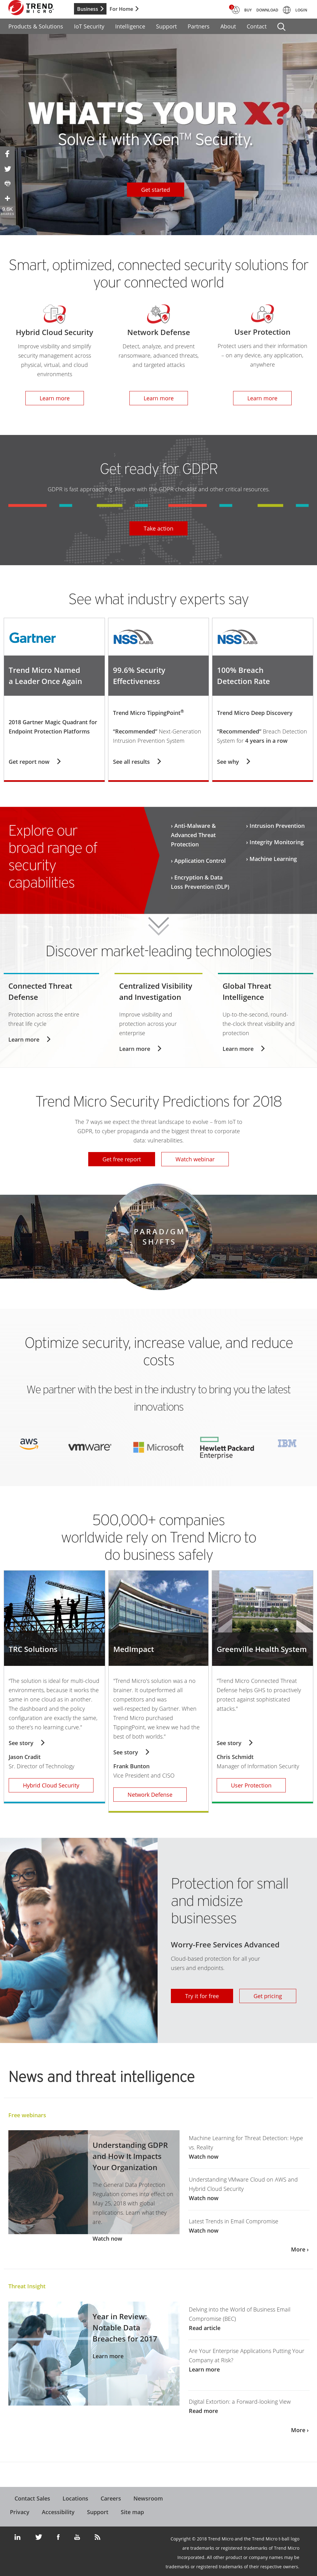 Trend Micro Competitors, Revenue and Employees - Owler Company Profile